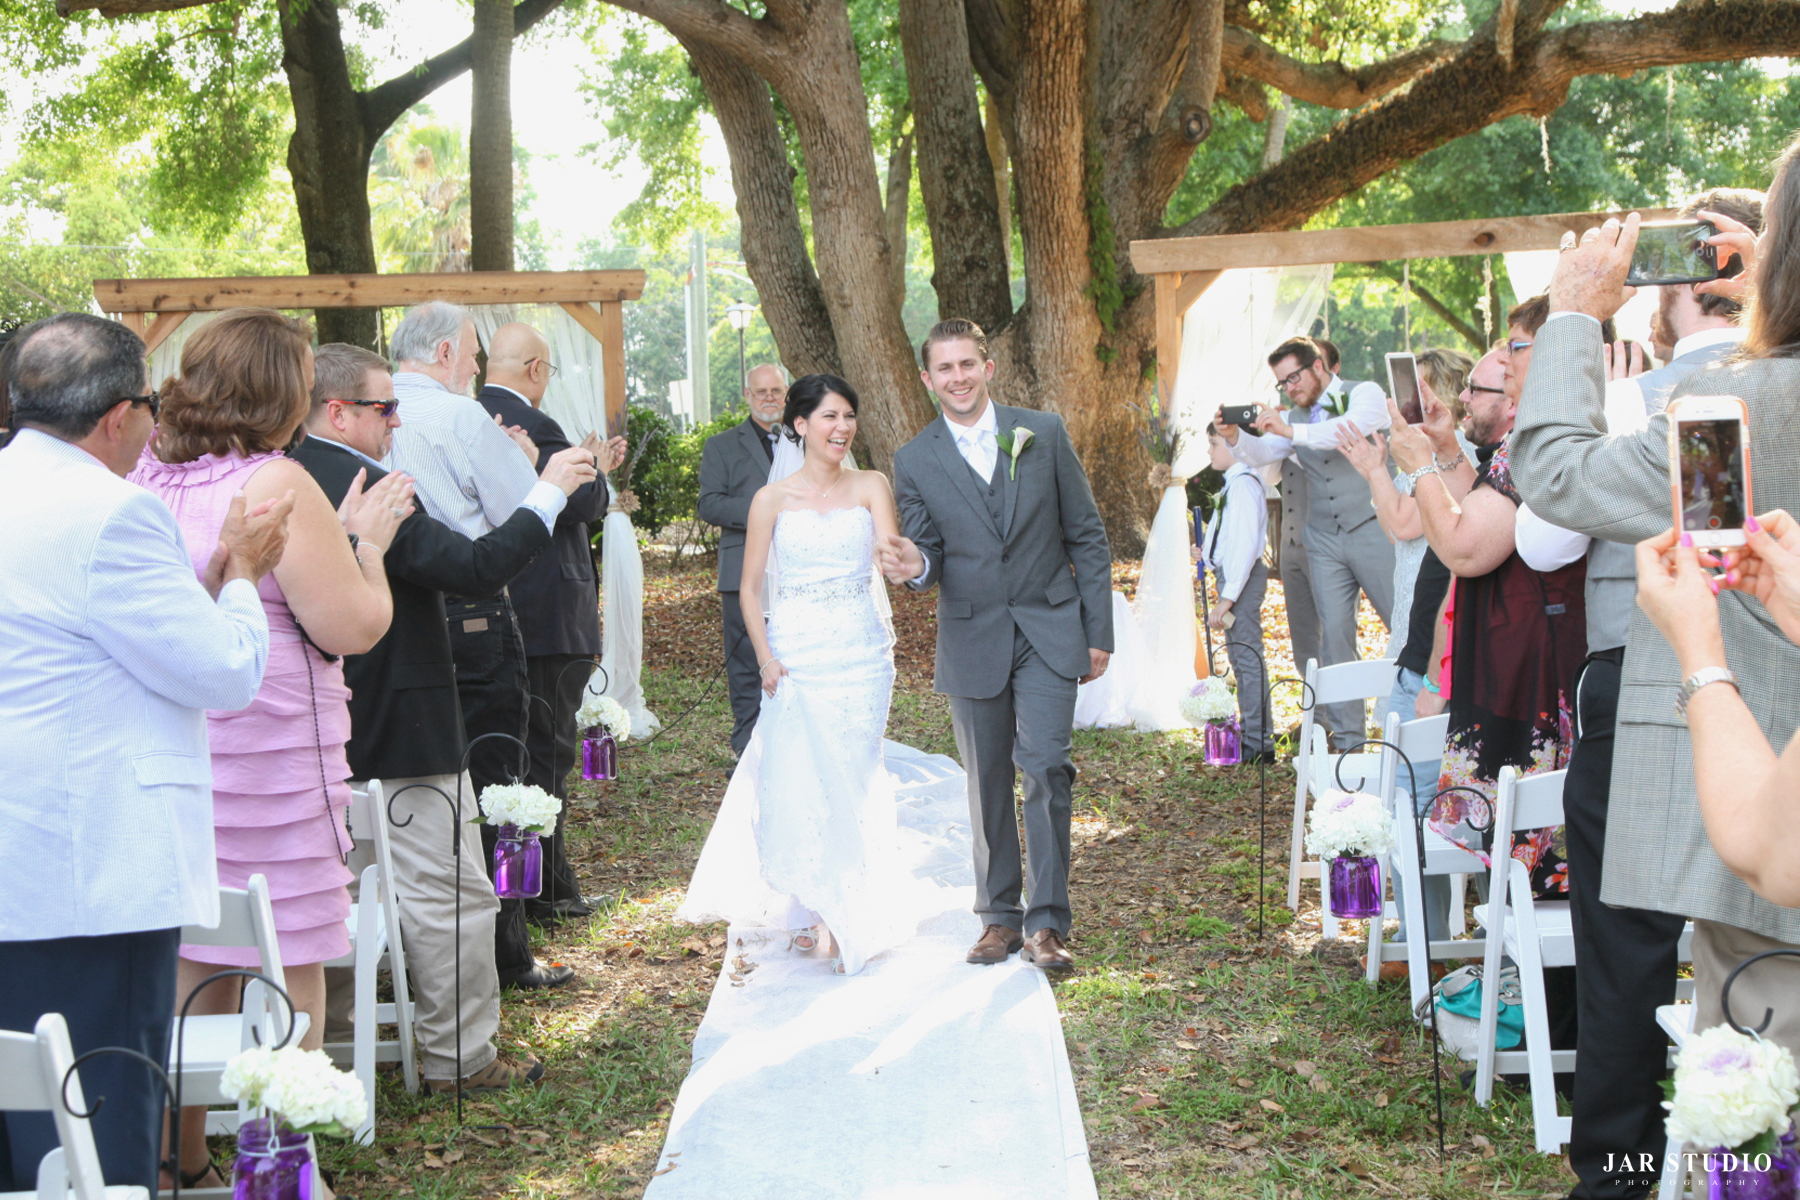 The Withers-Maguire-House-wedding-photographer-jarstudio (19).JPG